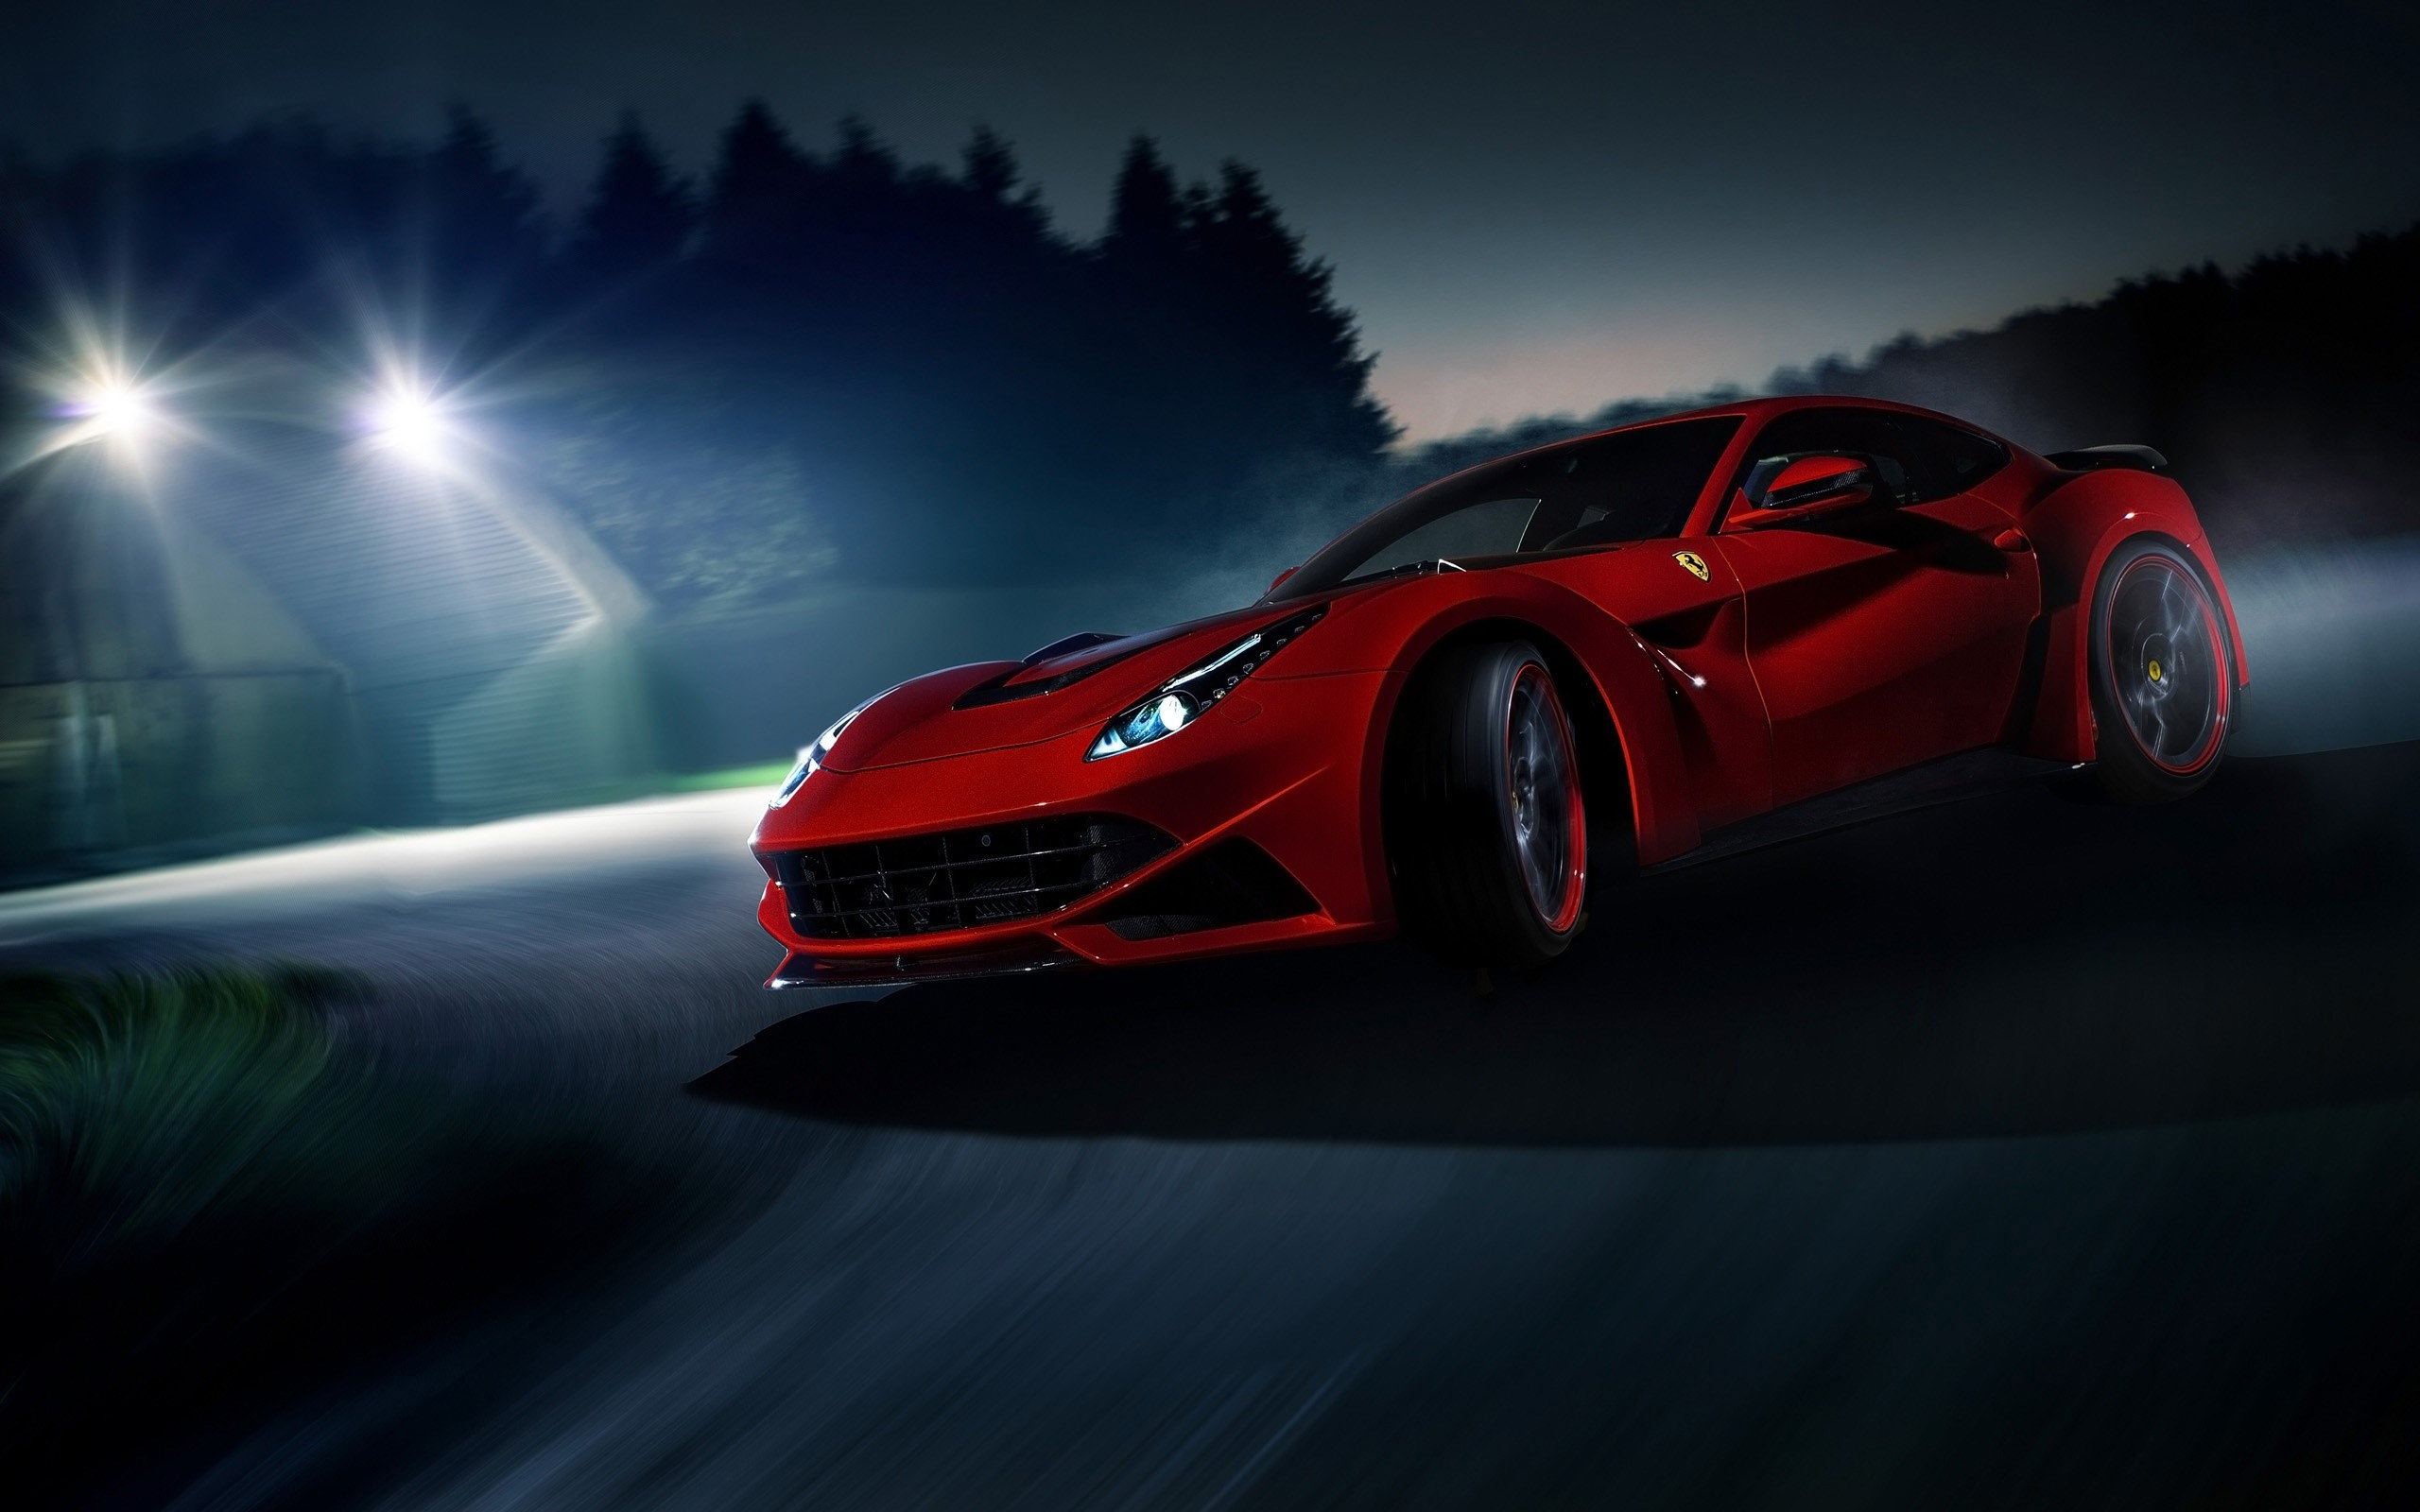 Wallpaper 2014 Novitec Rosso Ferrari F12 Berlinetta n largo Images